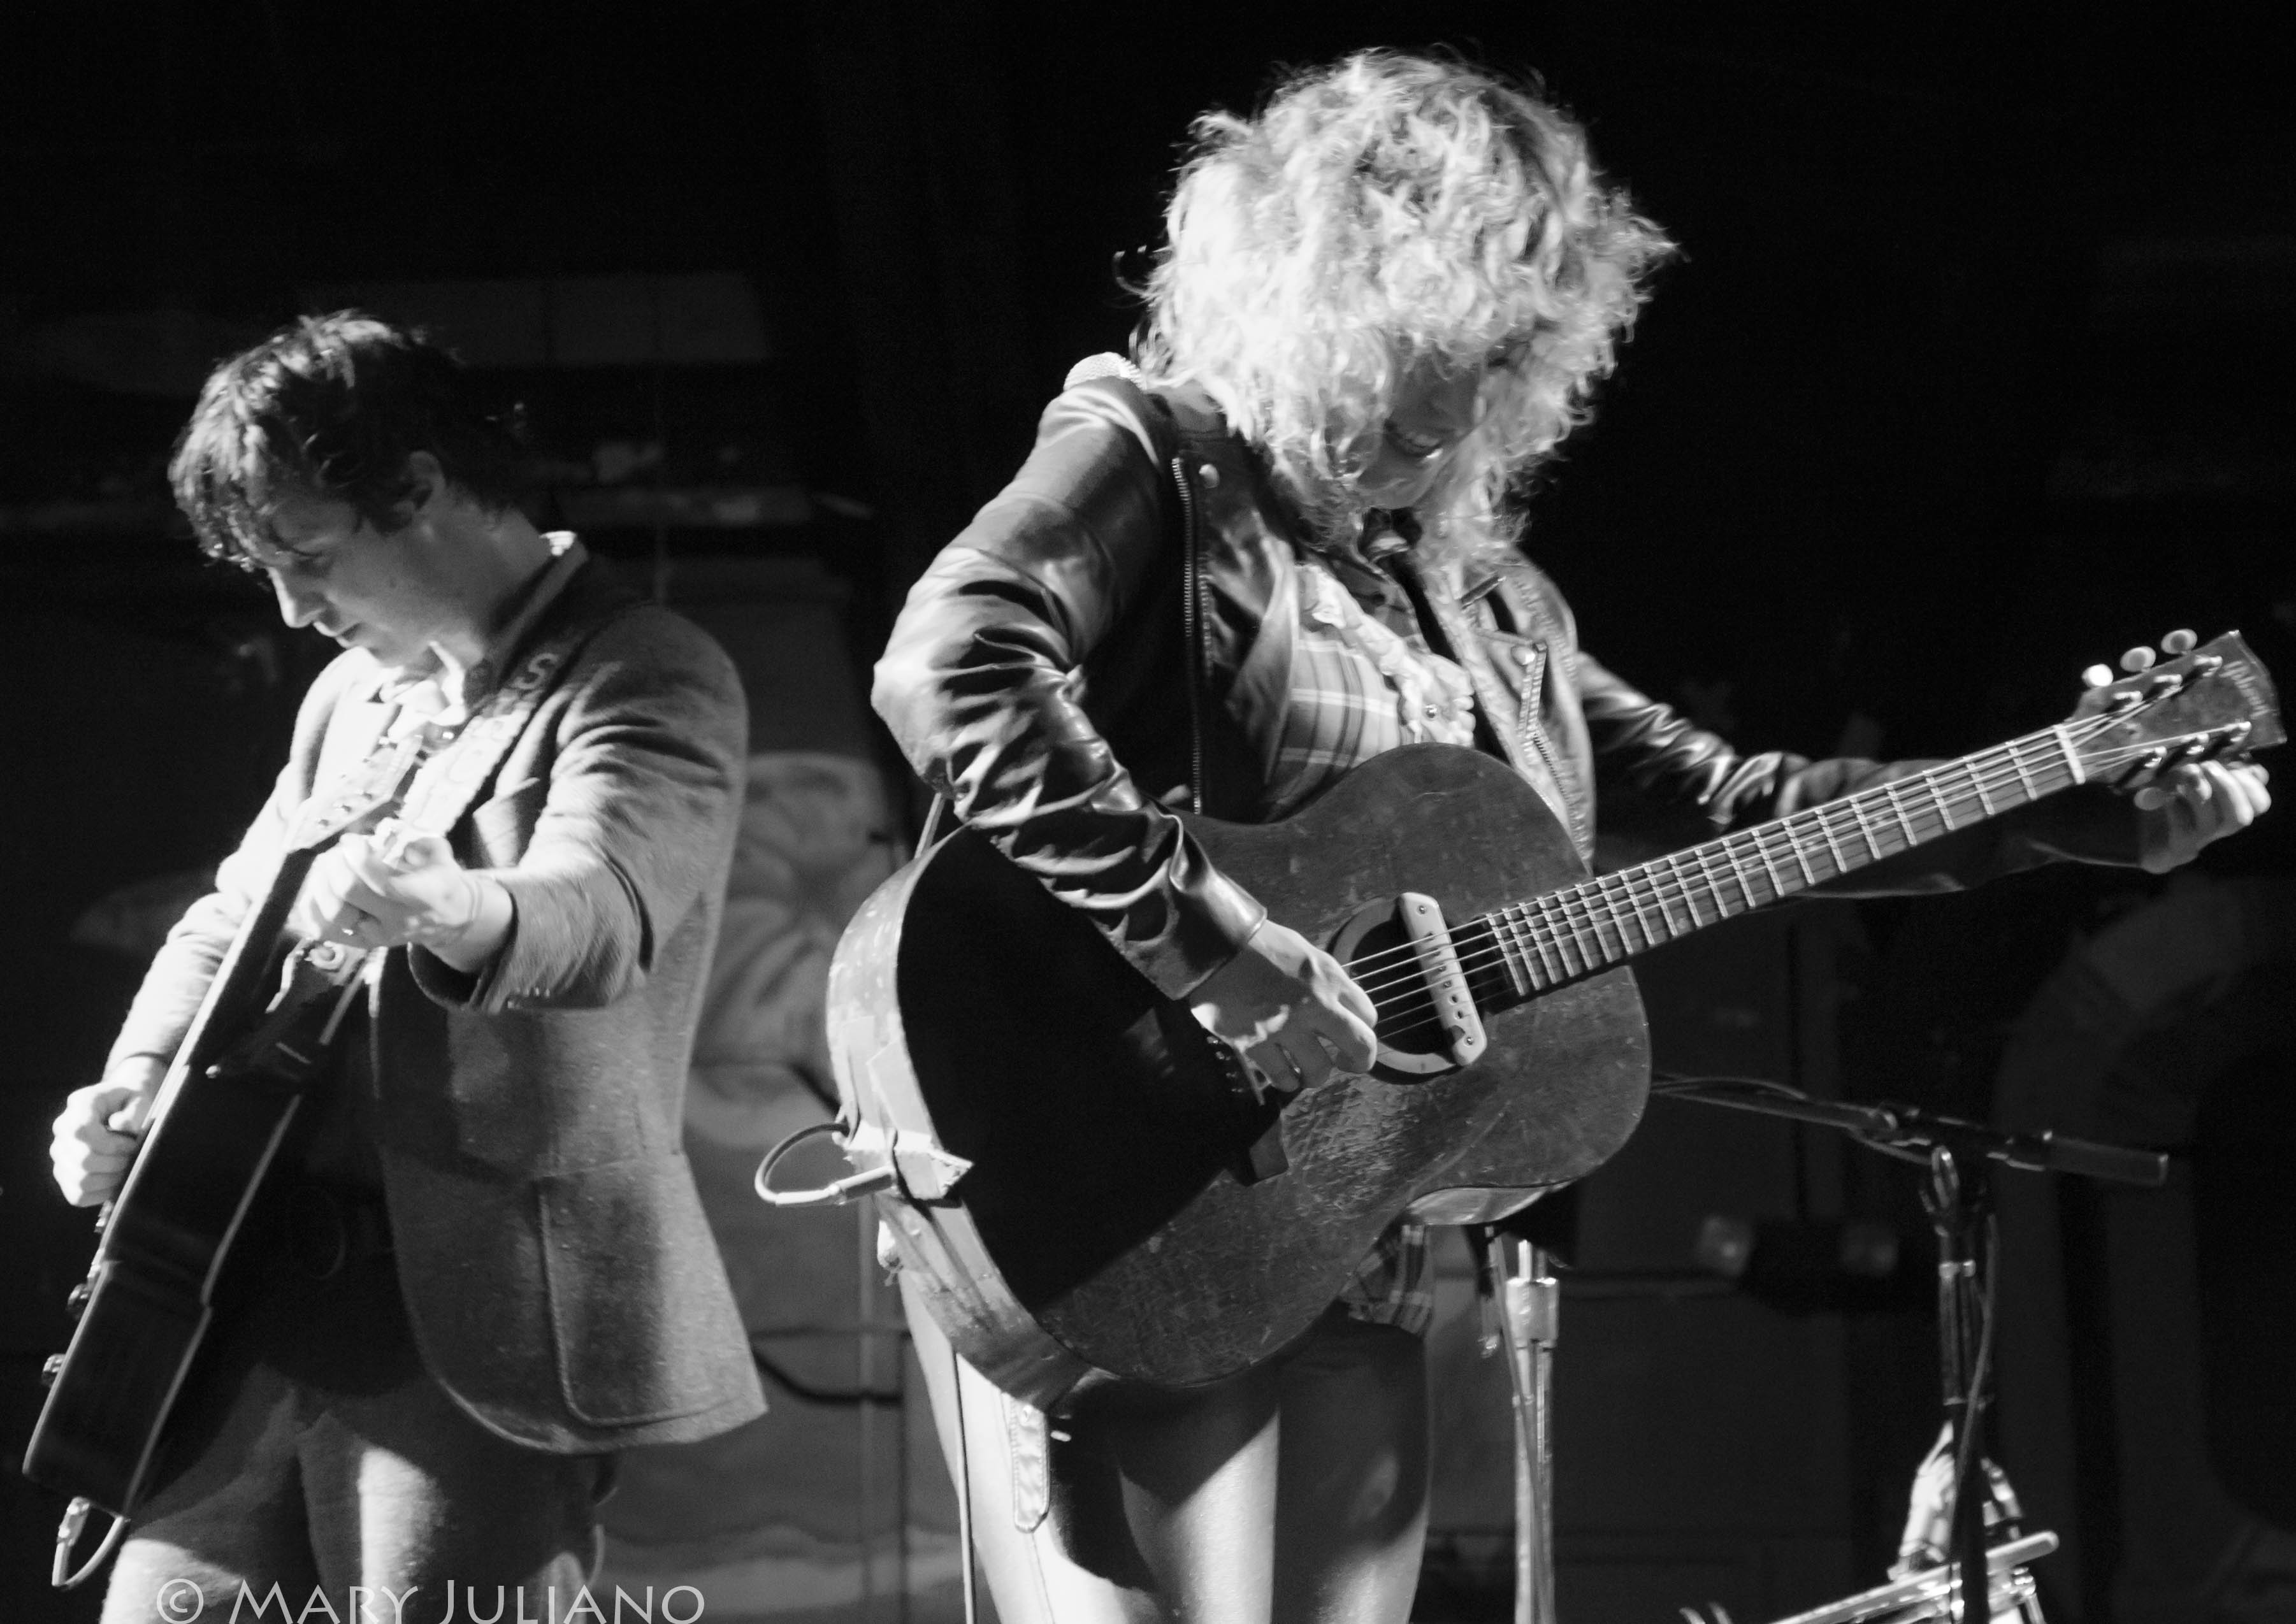 PHOTOS: Shovels and Rope at The Orange Peel